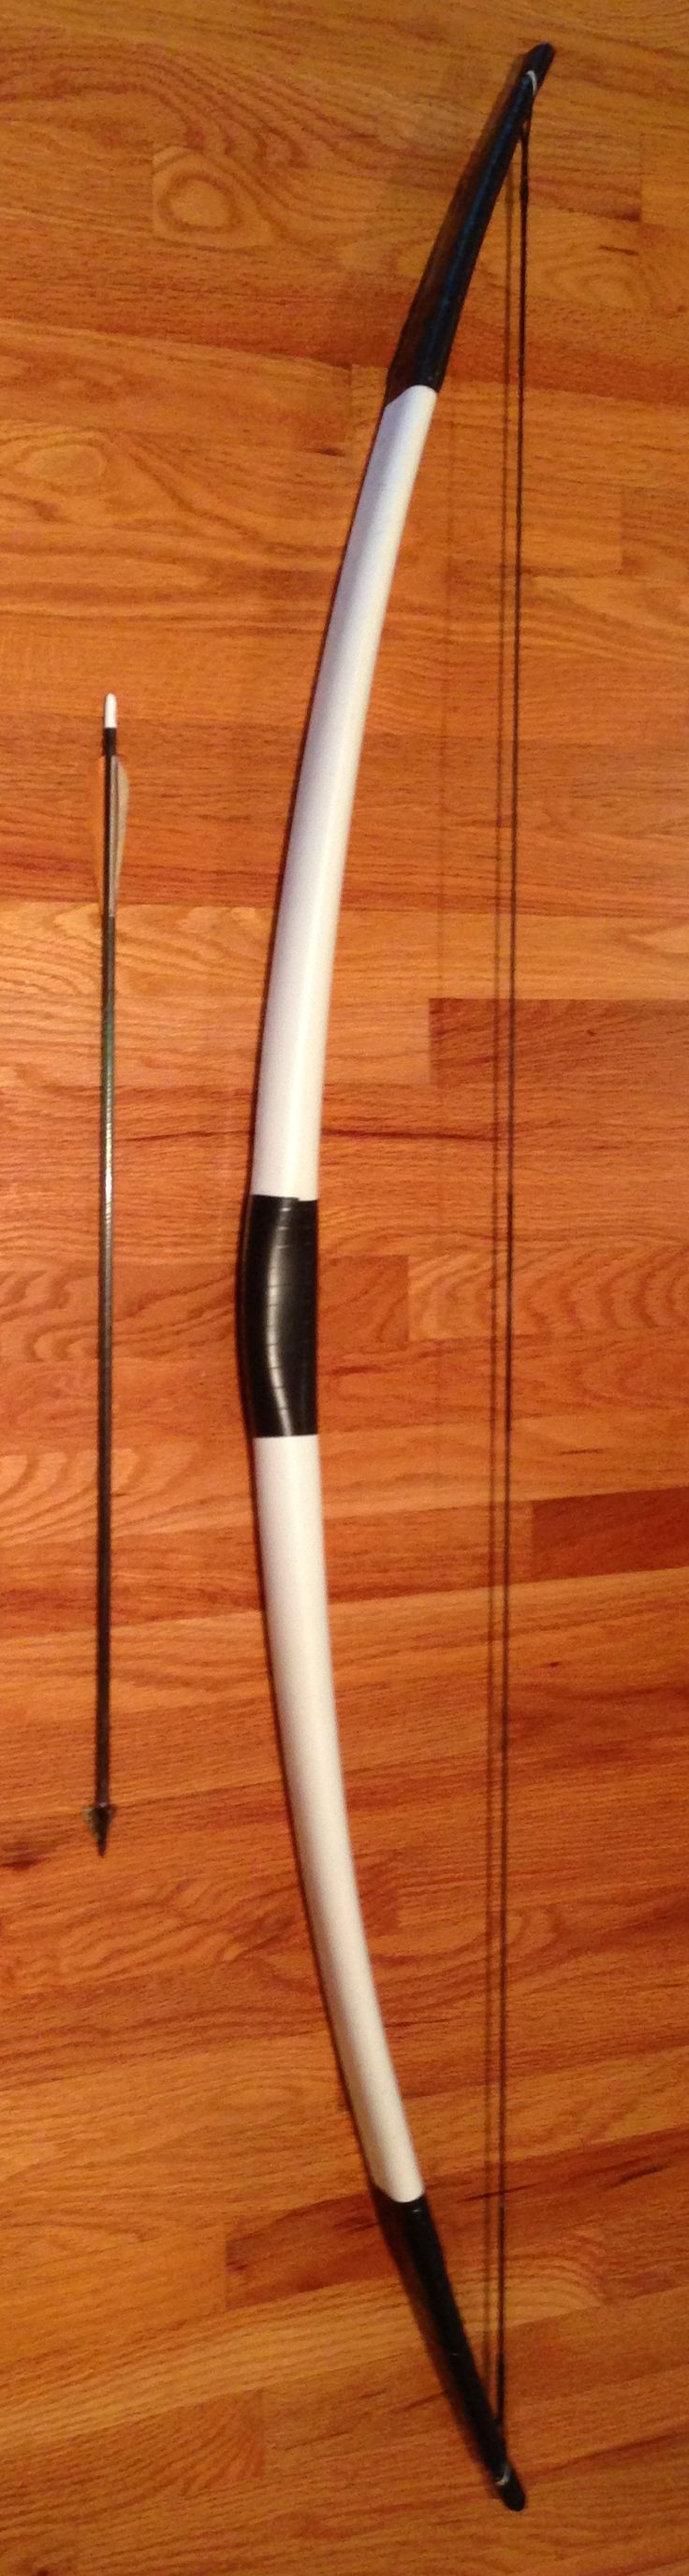 My complete 80 Pound PVC Long Bow by WindKEW! -With creative credit to Nick and his YouTube channel The Backyard Bowyer